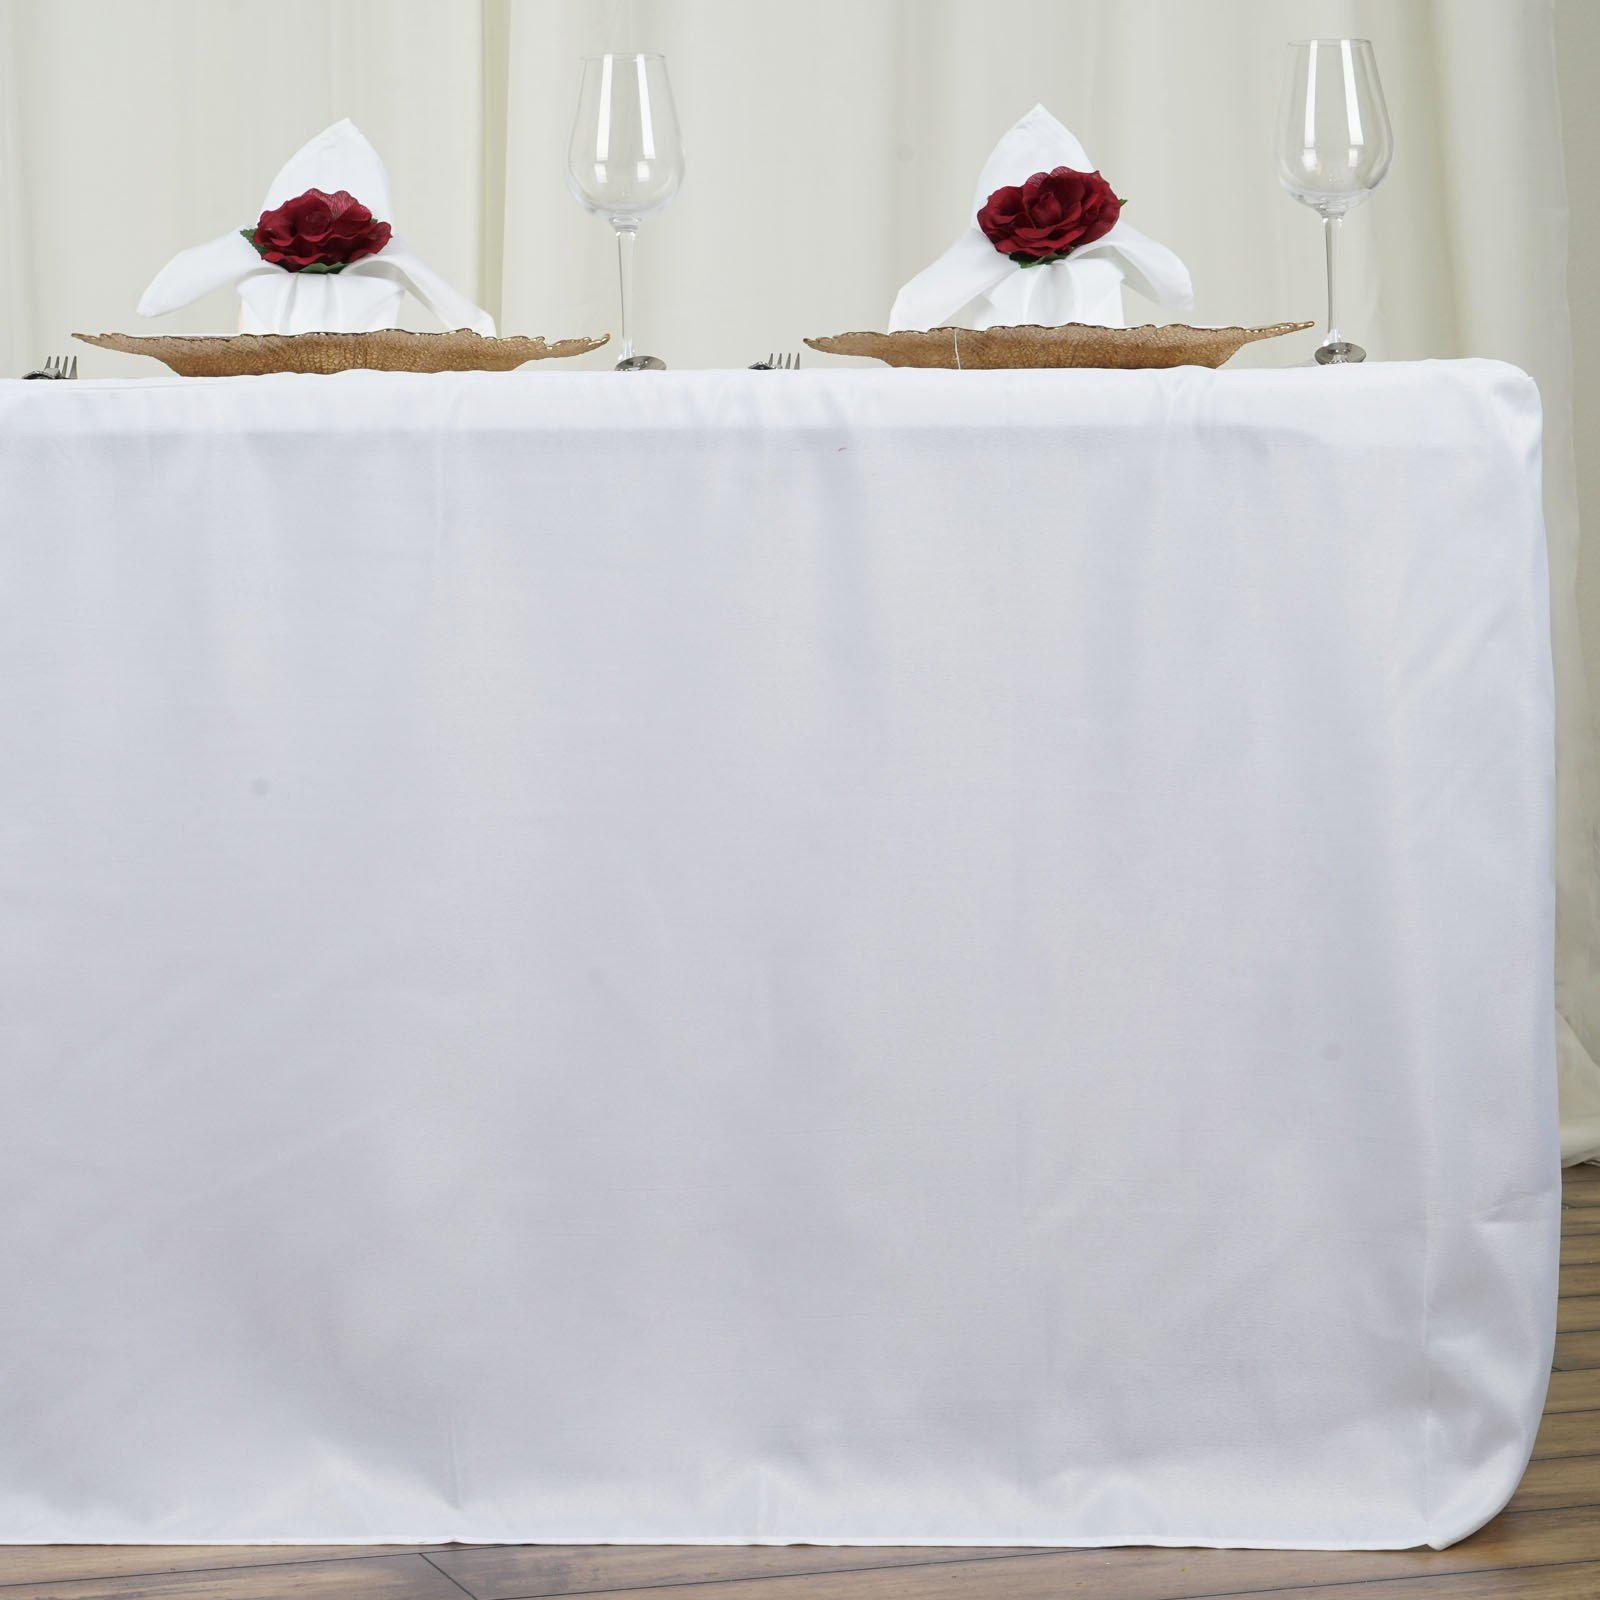 6ft Fitted White Wholesale Polyester Table Cover Wedding